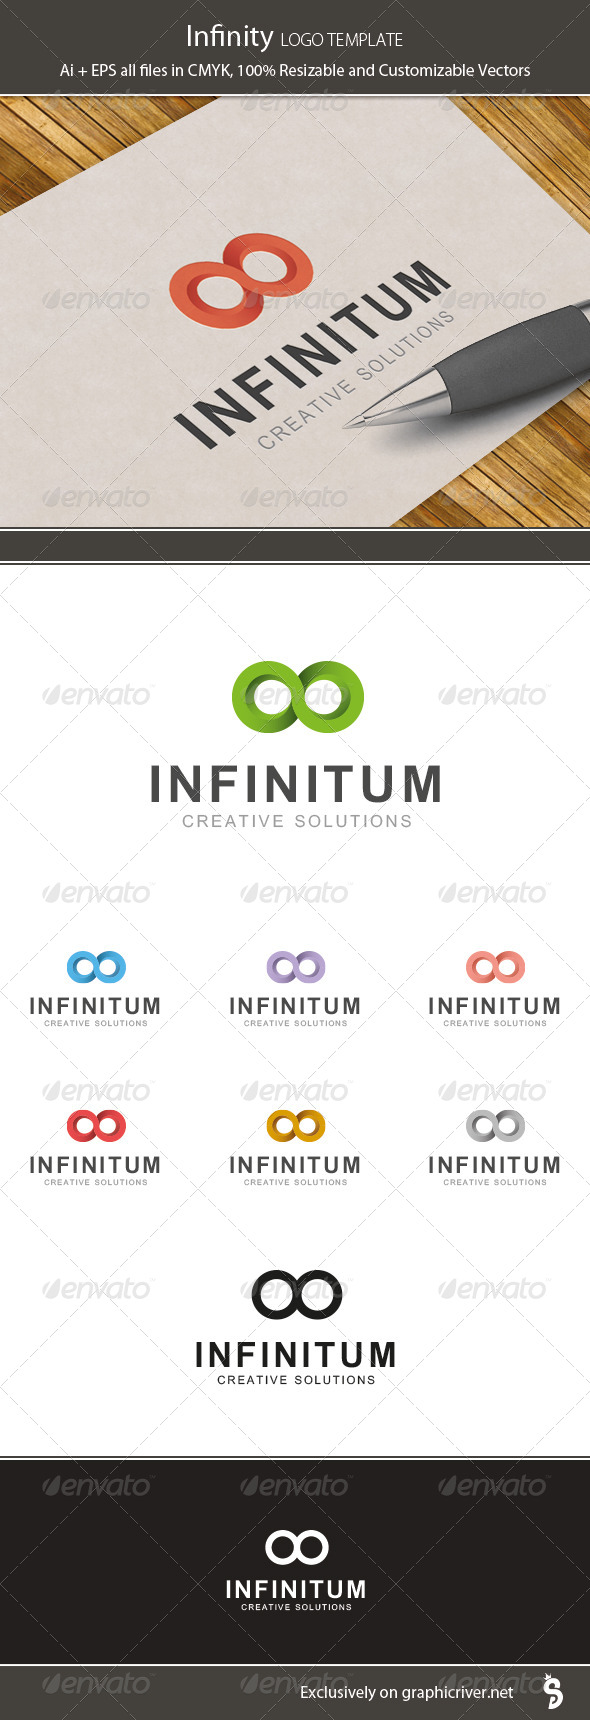 Infinity - Logo Template - Vector Abstract